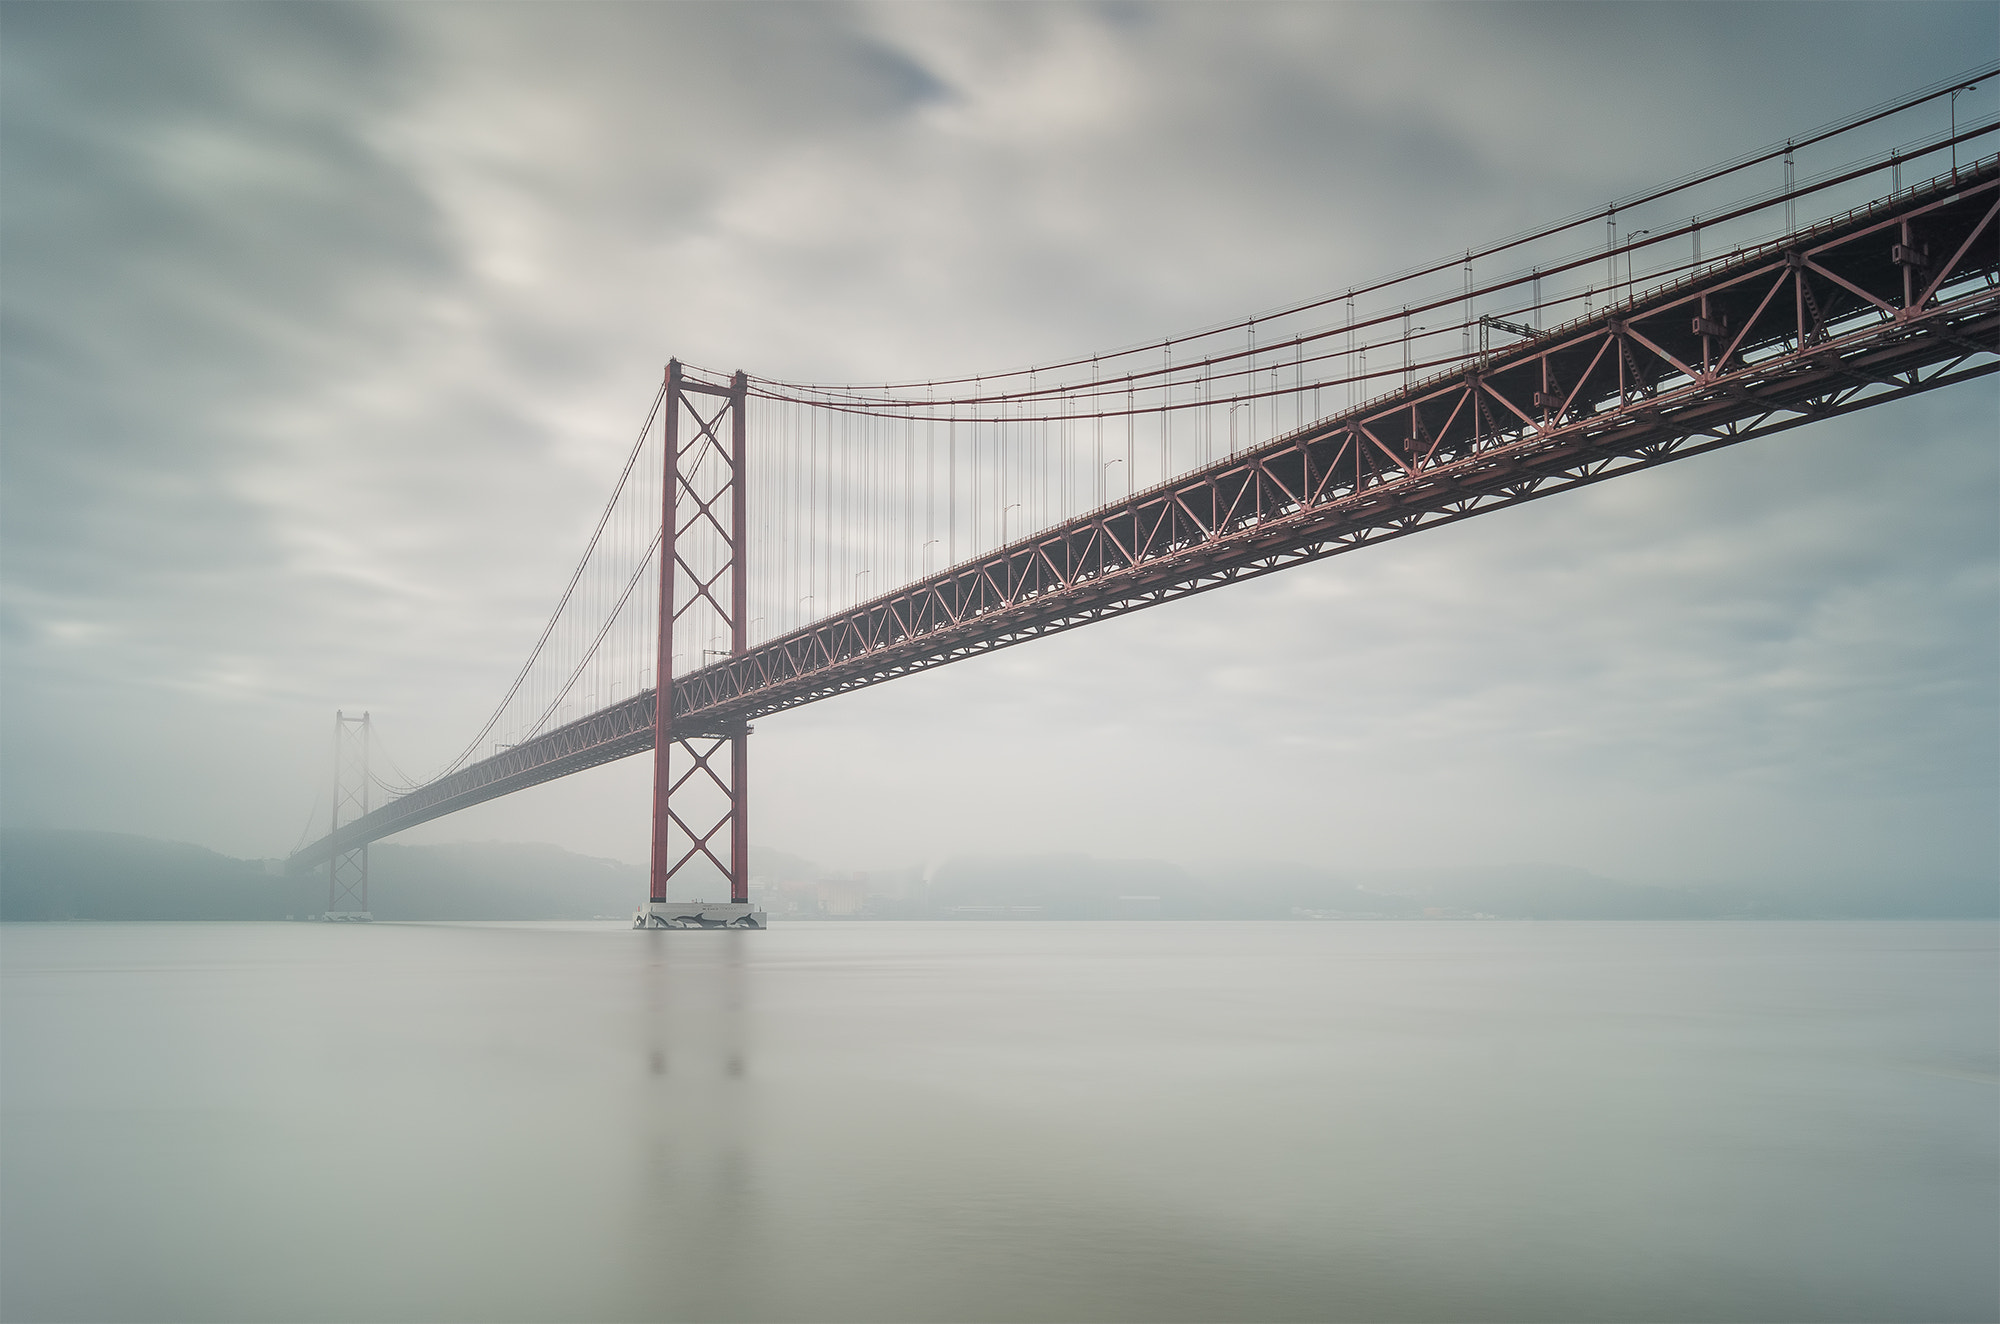 Photograph Bridge 25 de Abril by Emanuel Fernandes on 500px